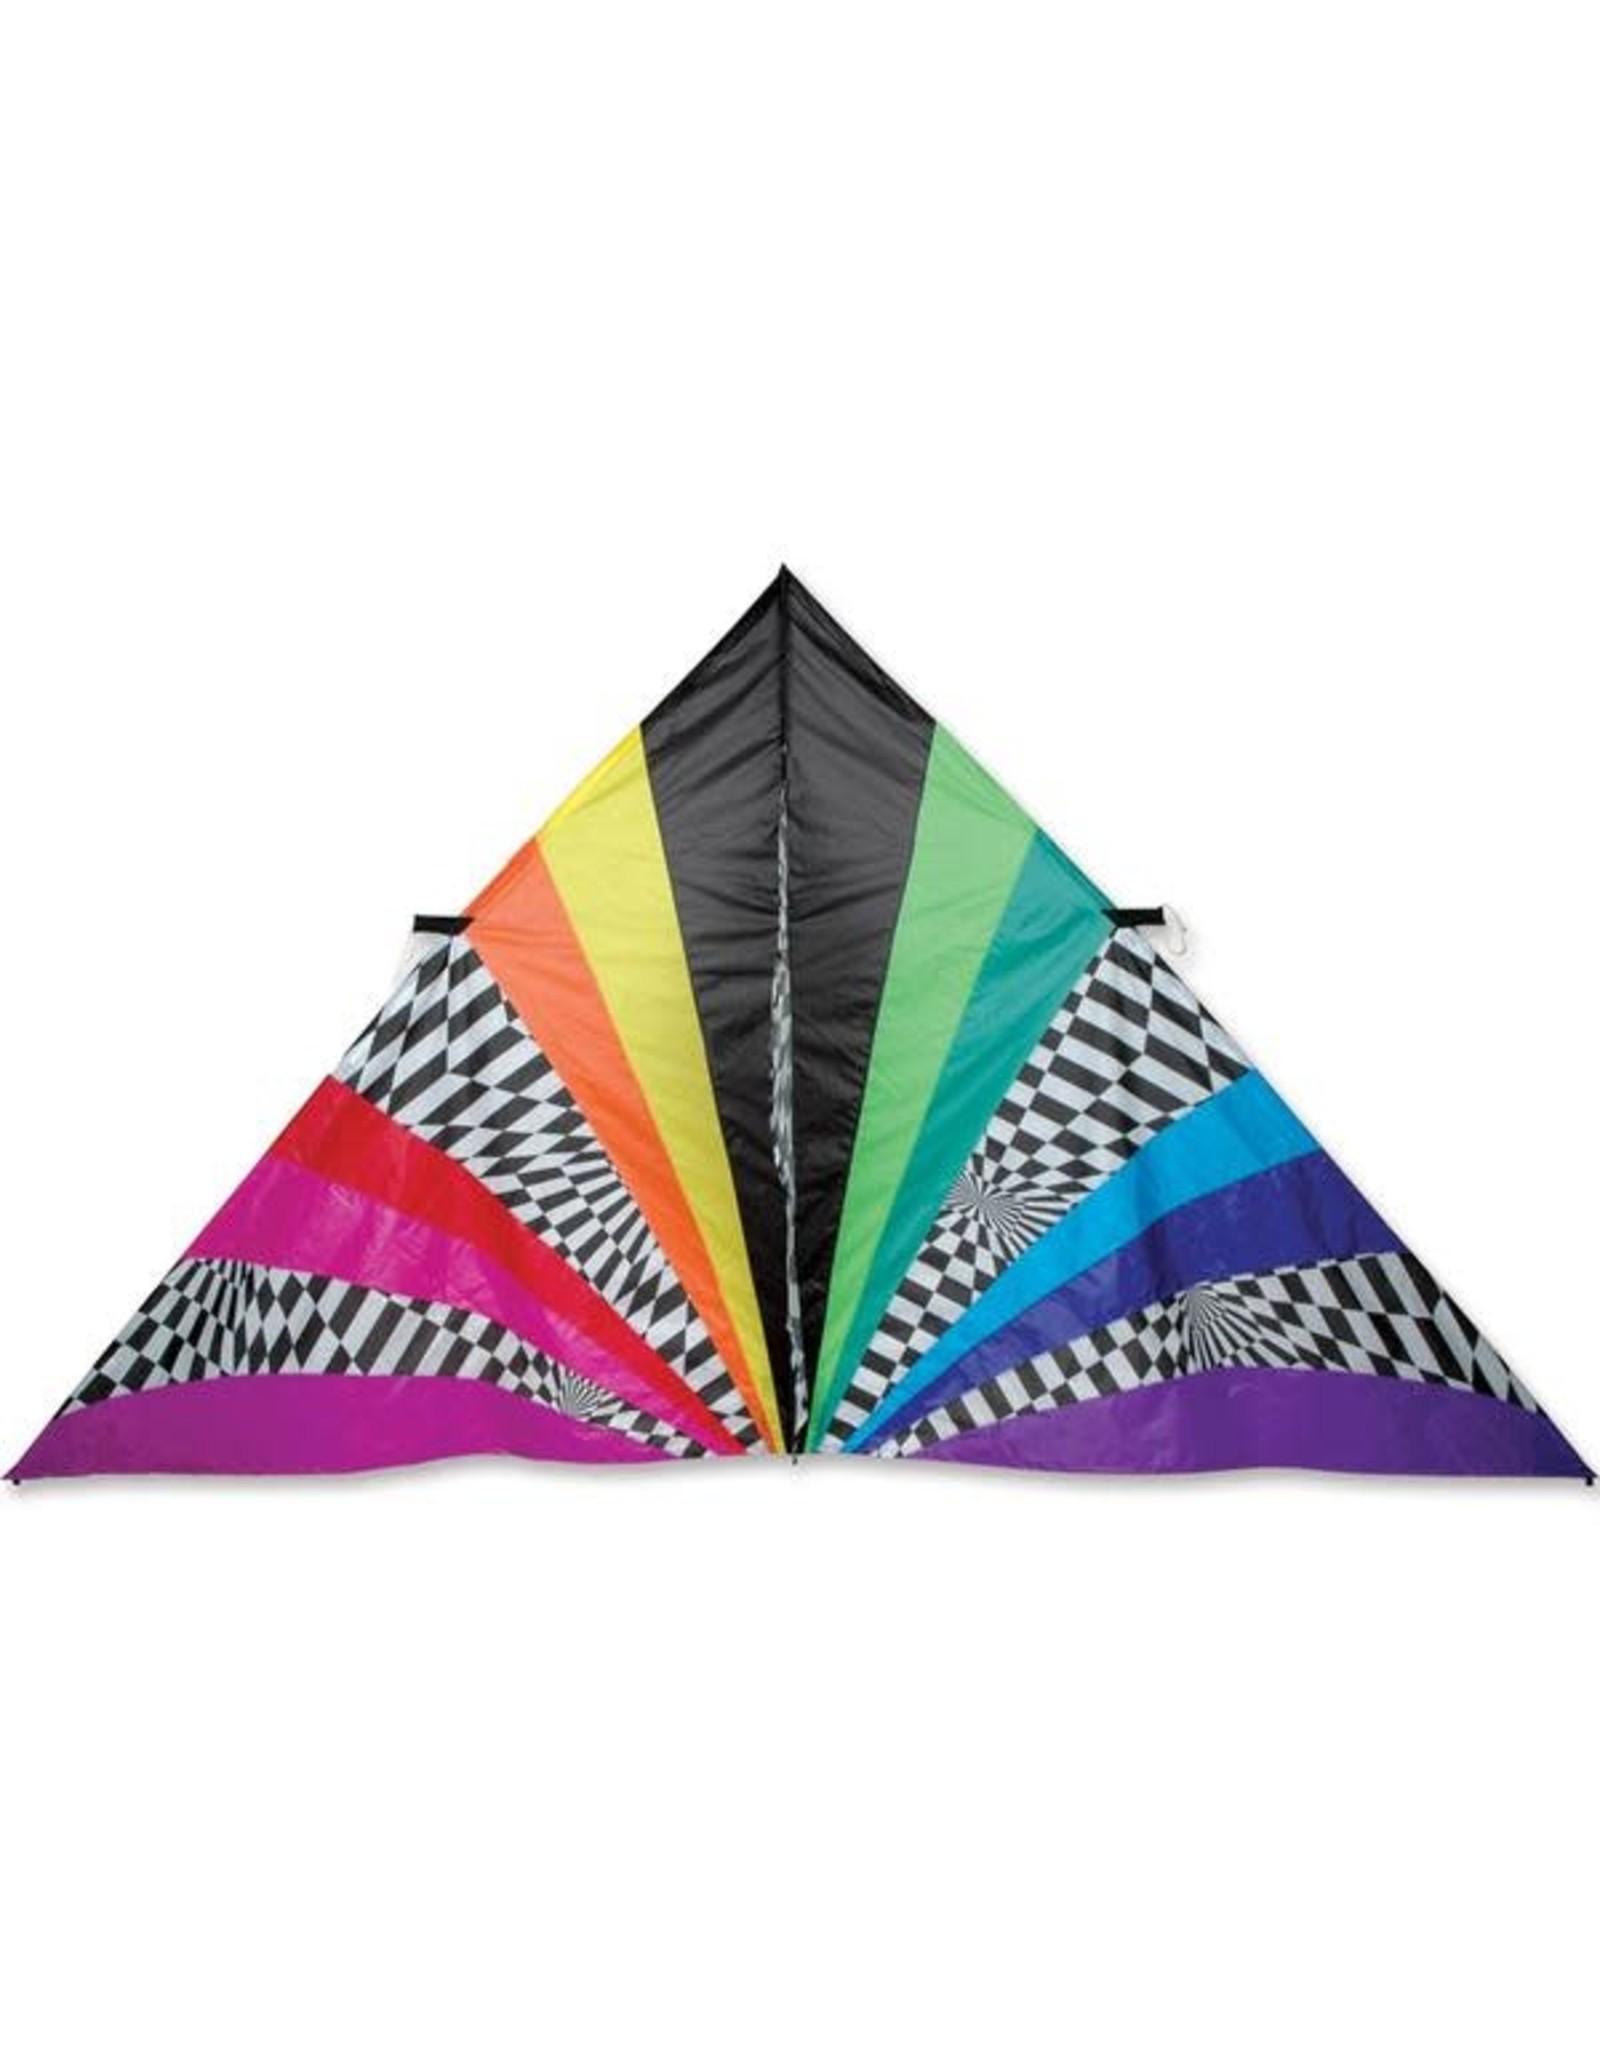 Premier Kites 11 Ft. Delta Kite, Rainbow Op-Art